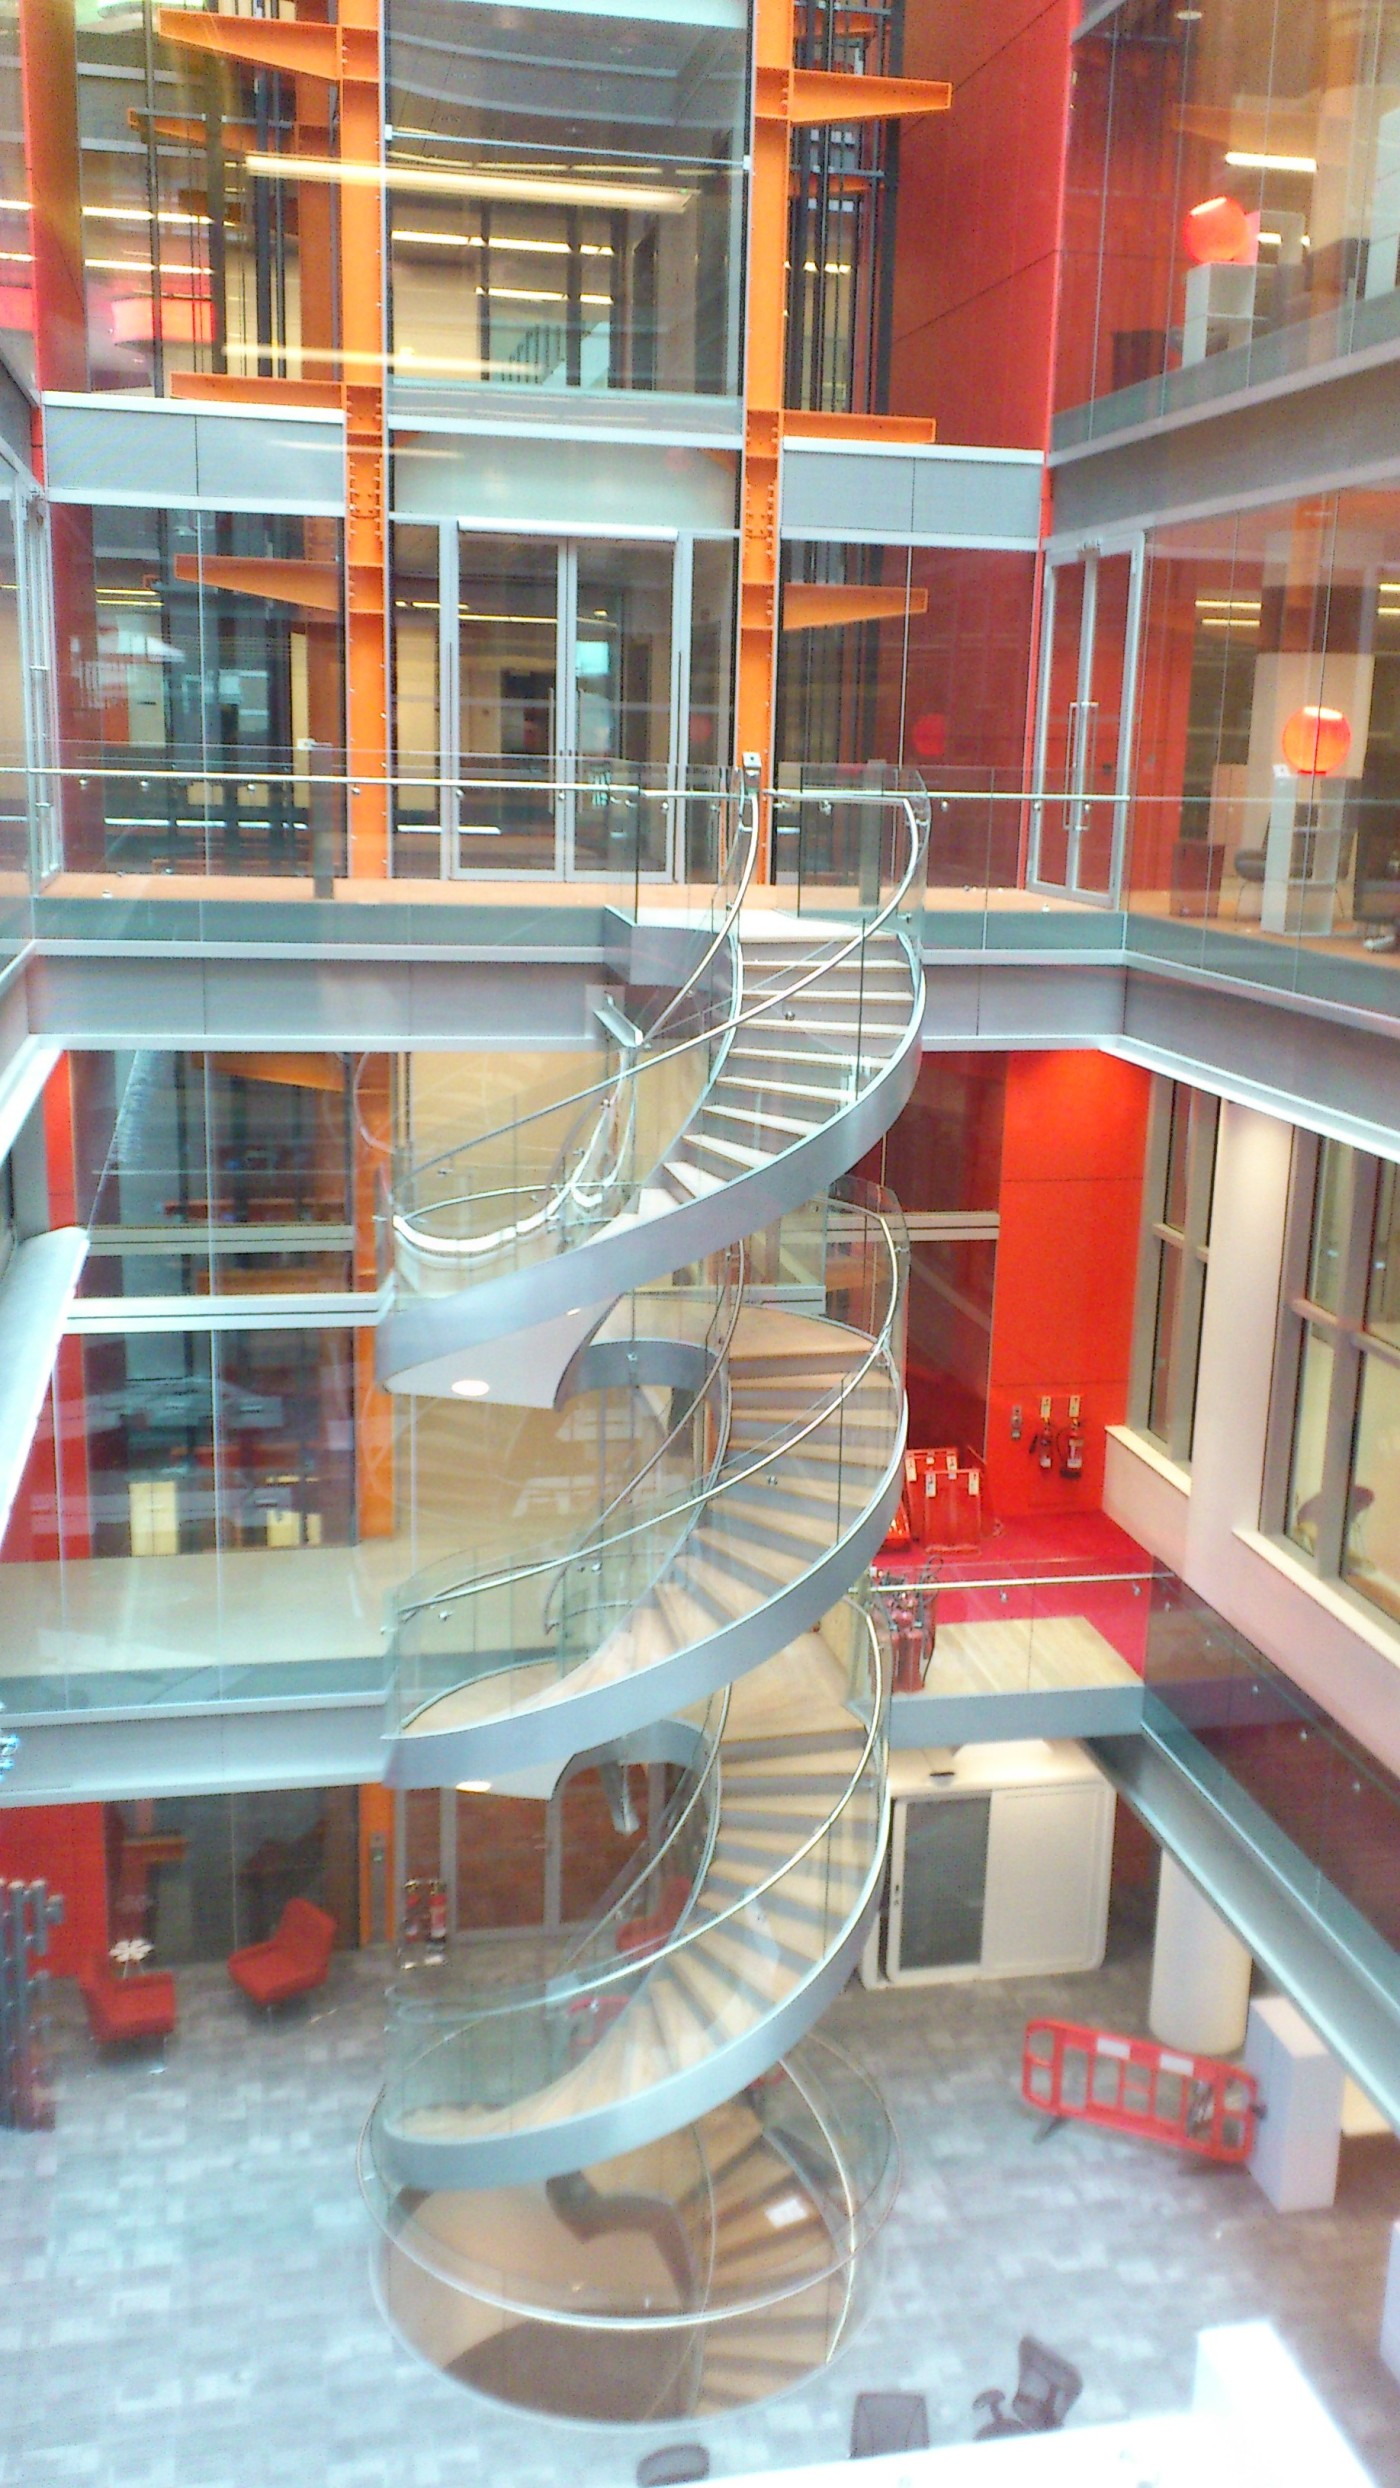 incredible view of spiral staircase